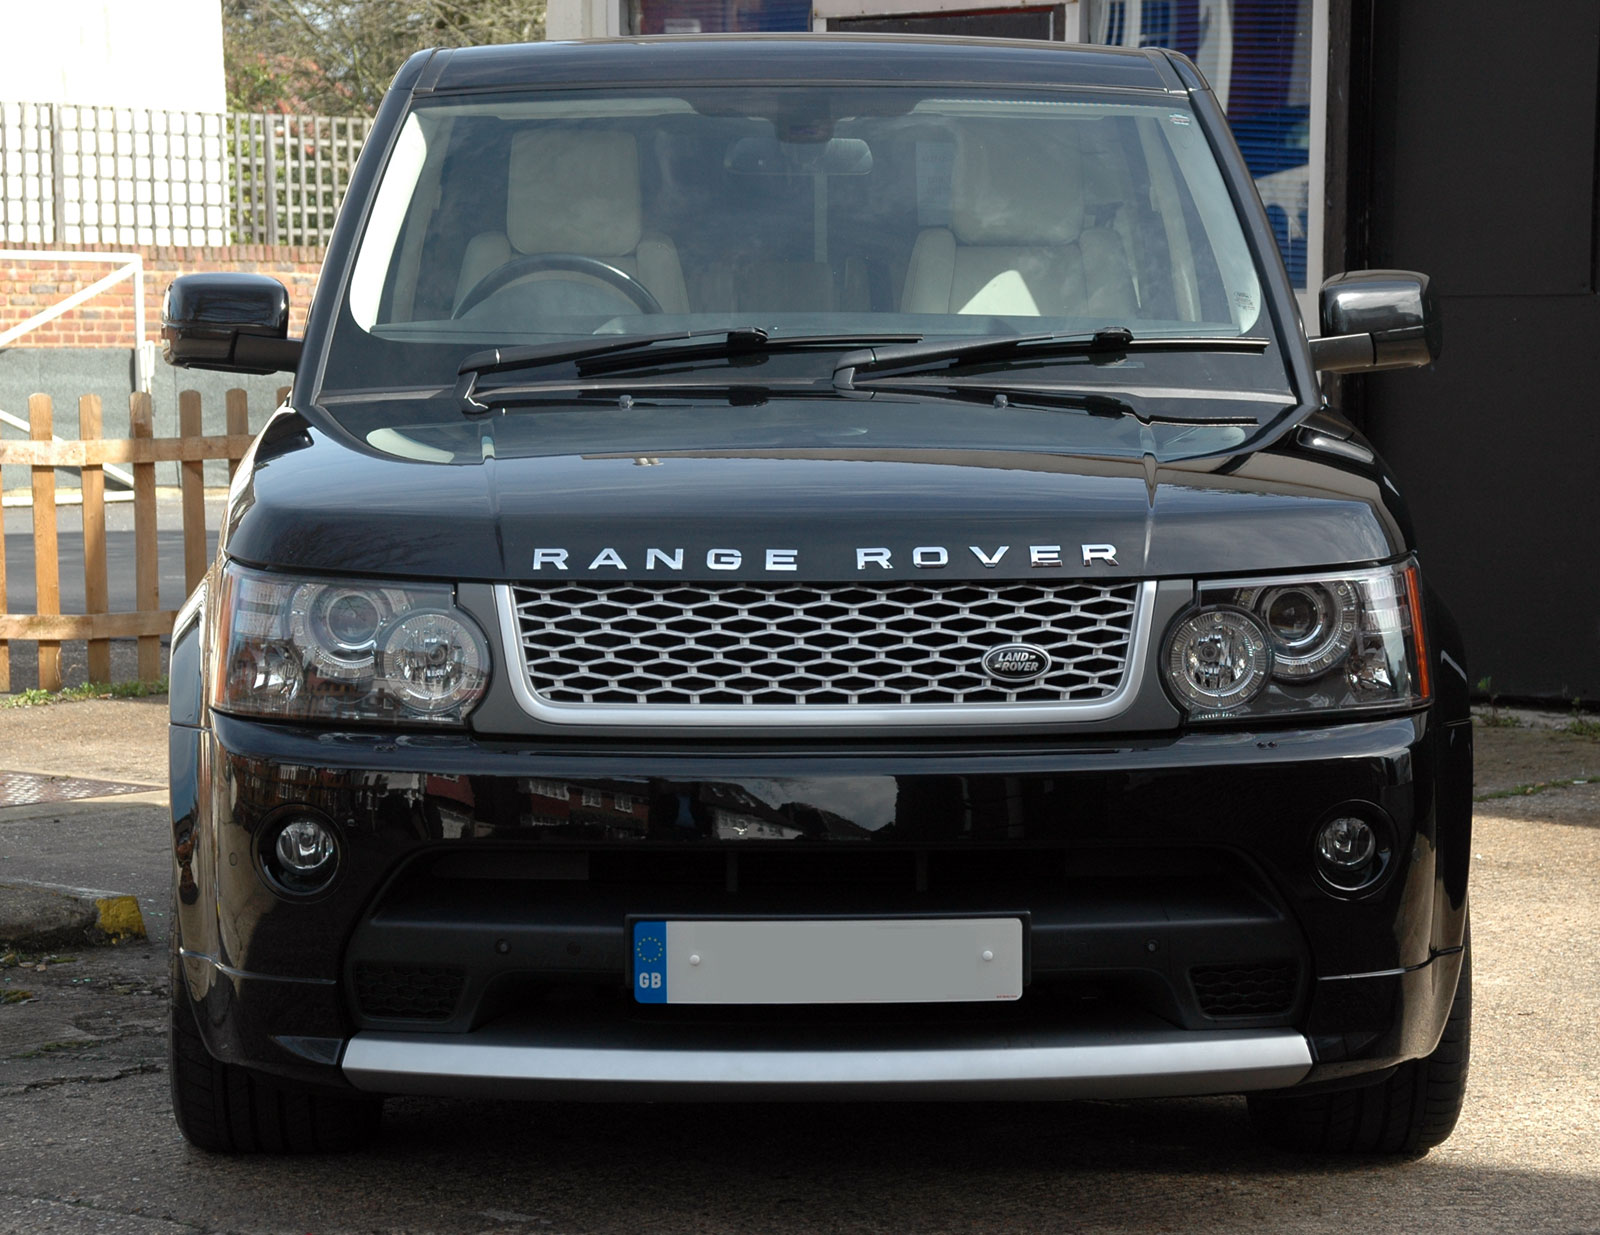 Pattern 2013 Range Rover Sport Autobiography Conversion Kit for the 2010 model Sport